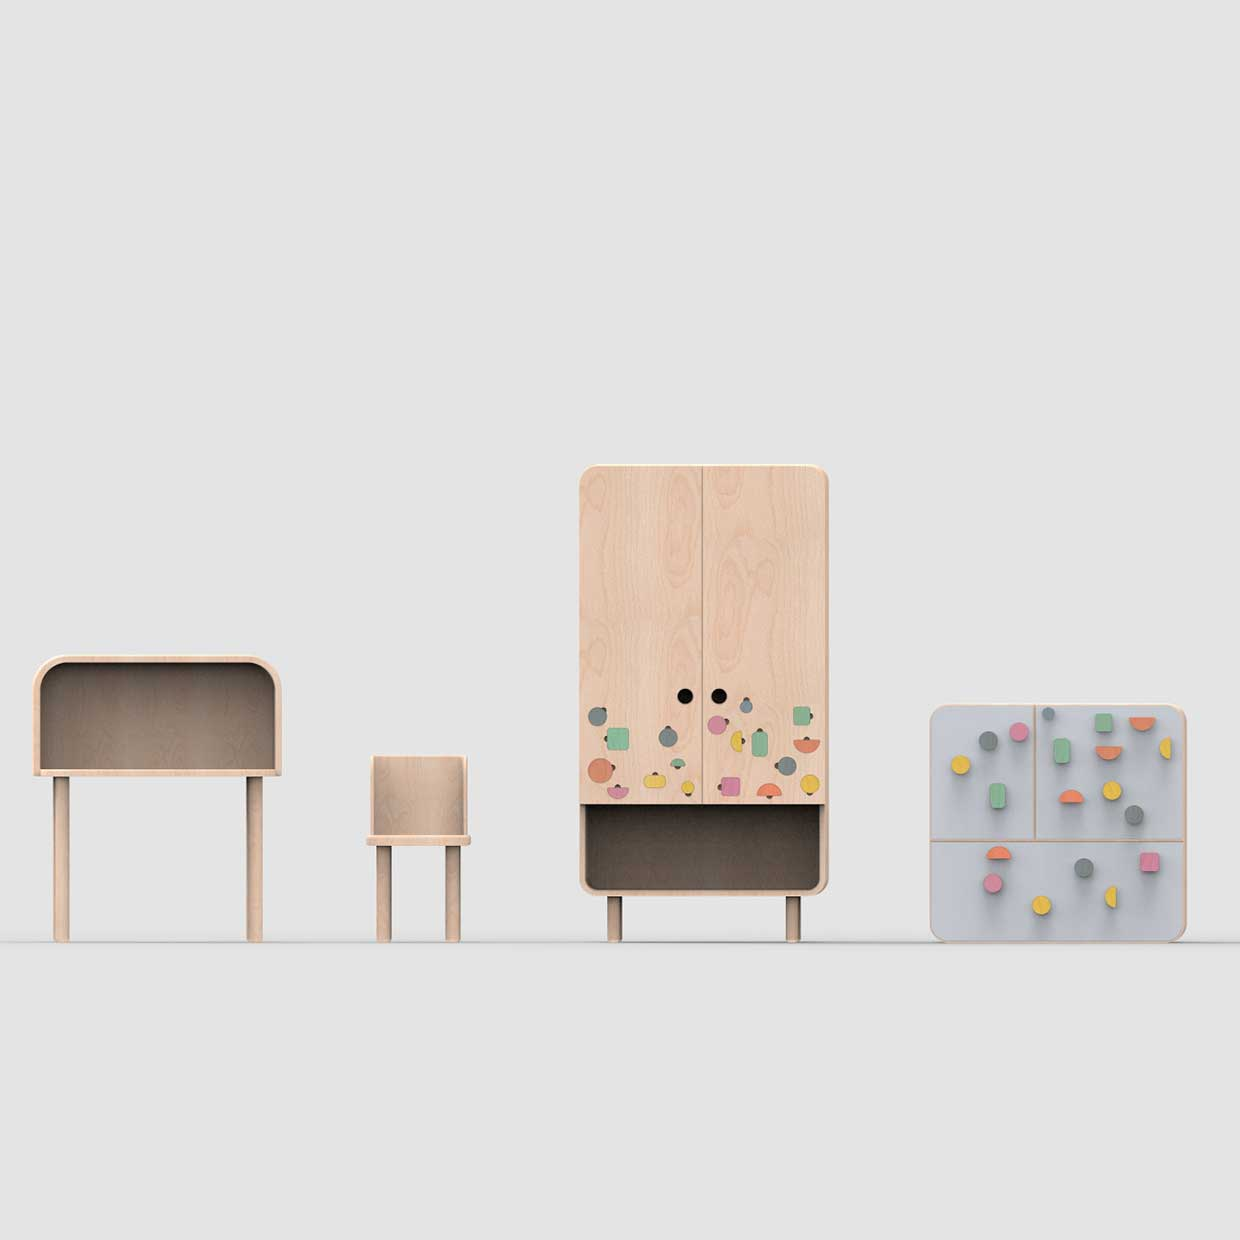 modern furniture by agata nowak afilii design architecture for